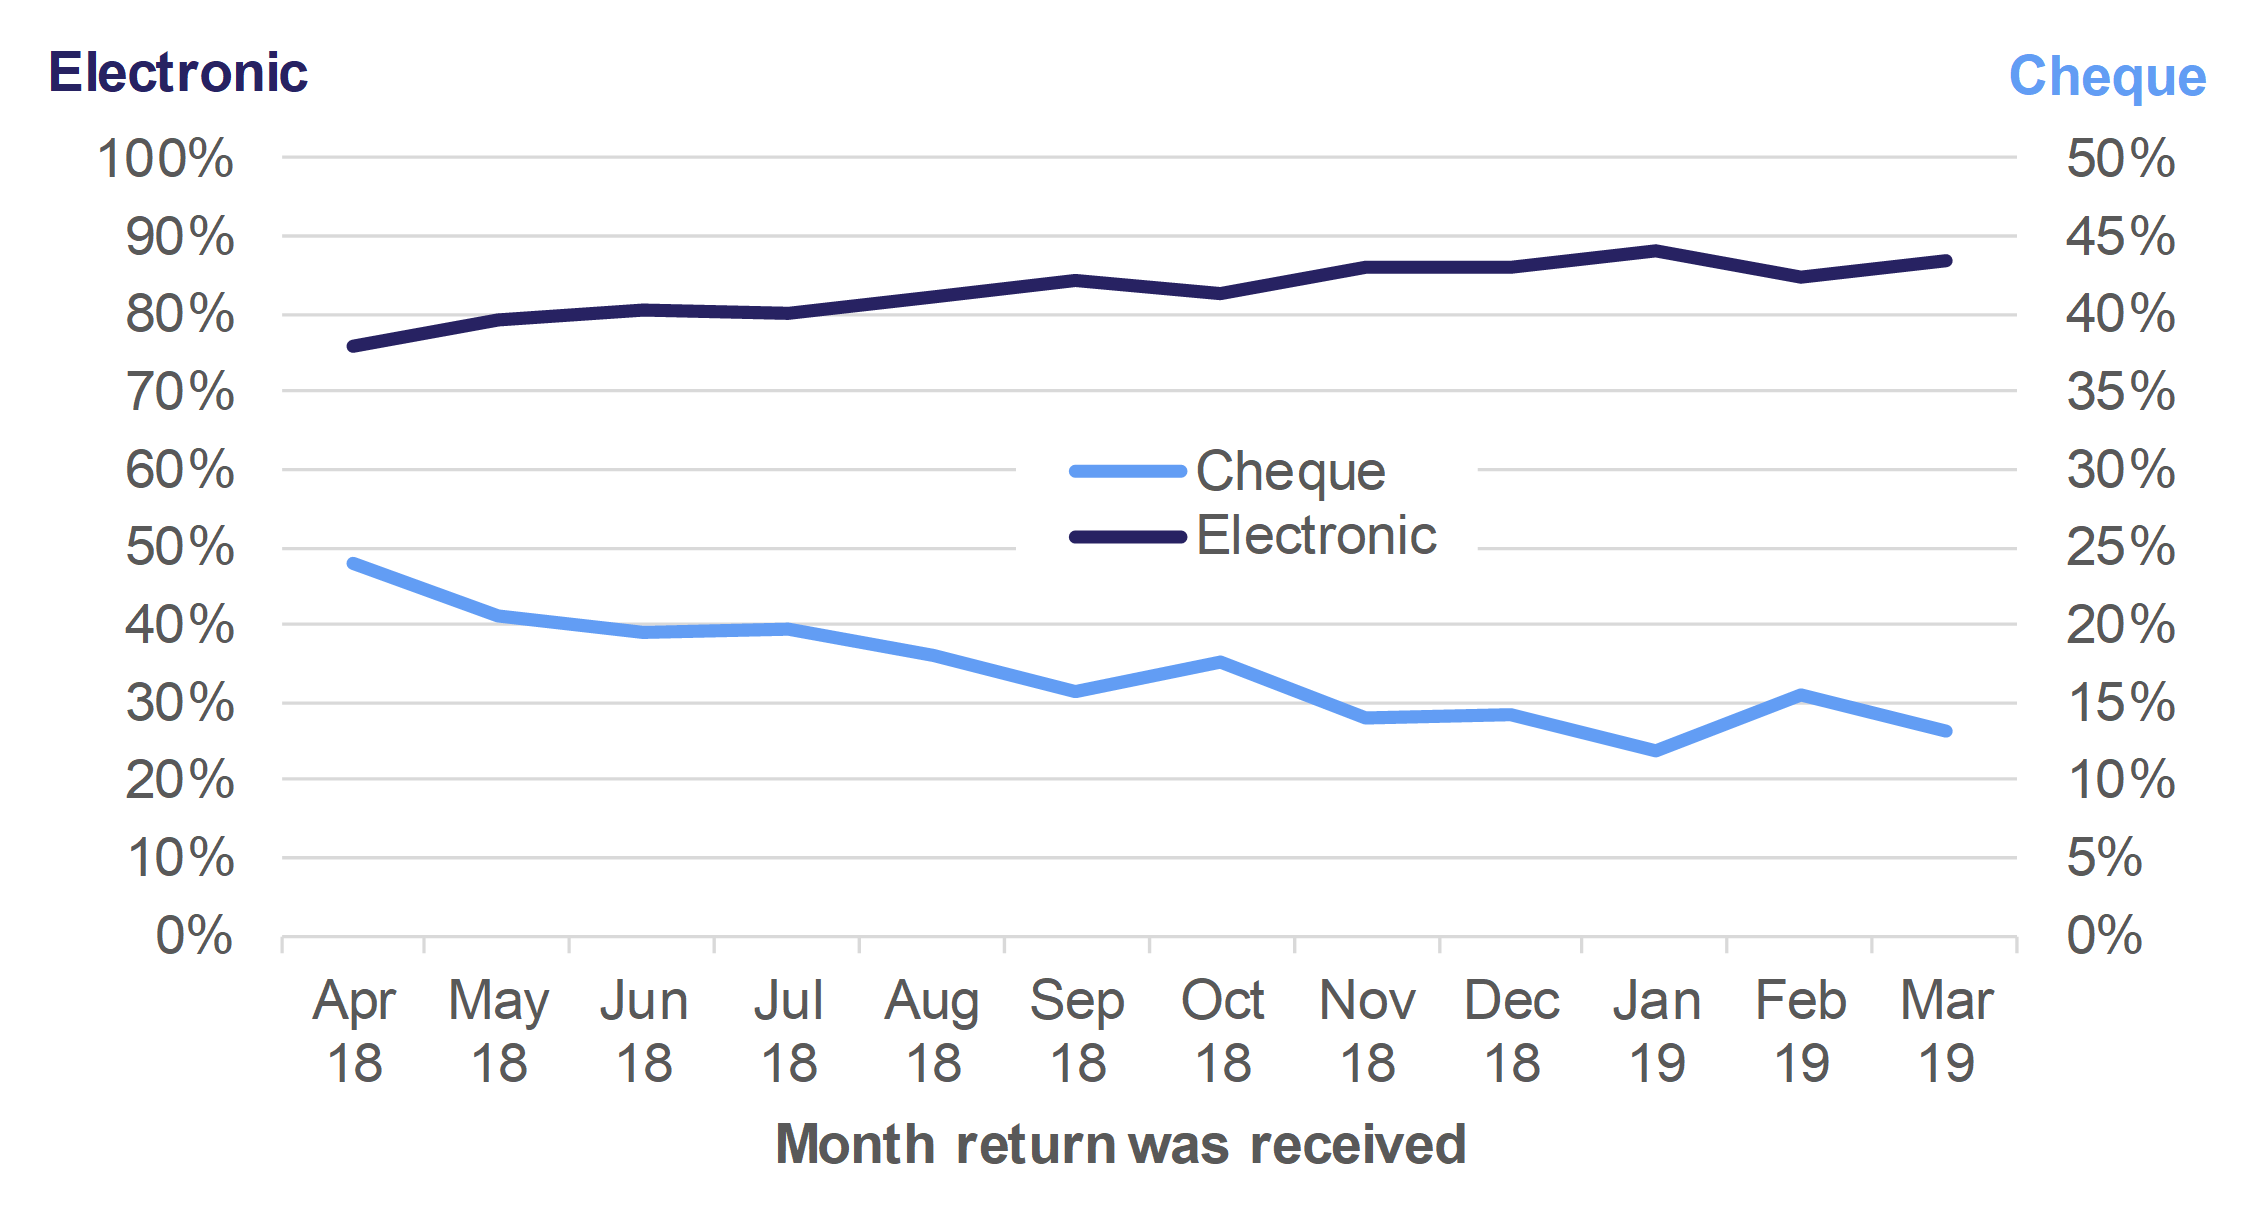 Figure 10.1 shows the monthly trend in the percentage of payments received electronically or by cheque, for returns received in April 2018 to March 2019.